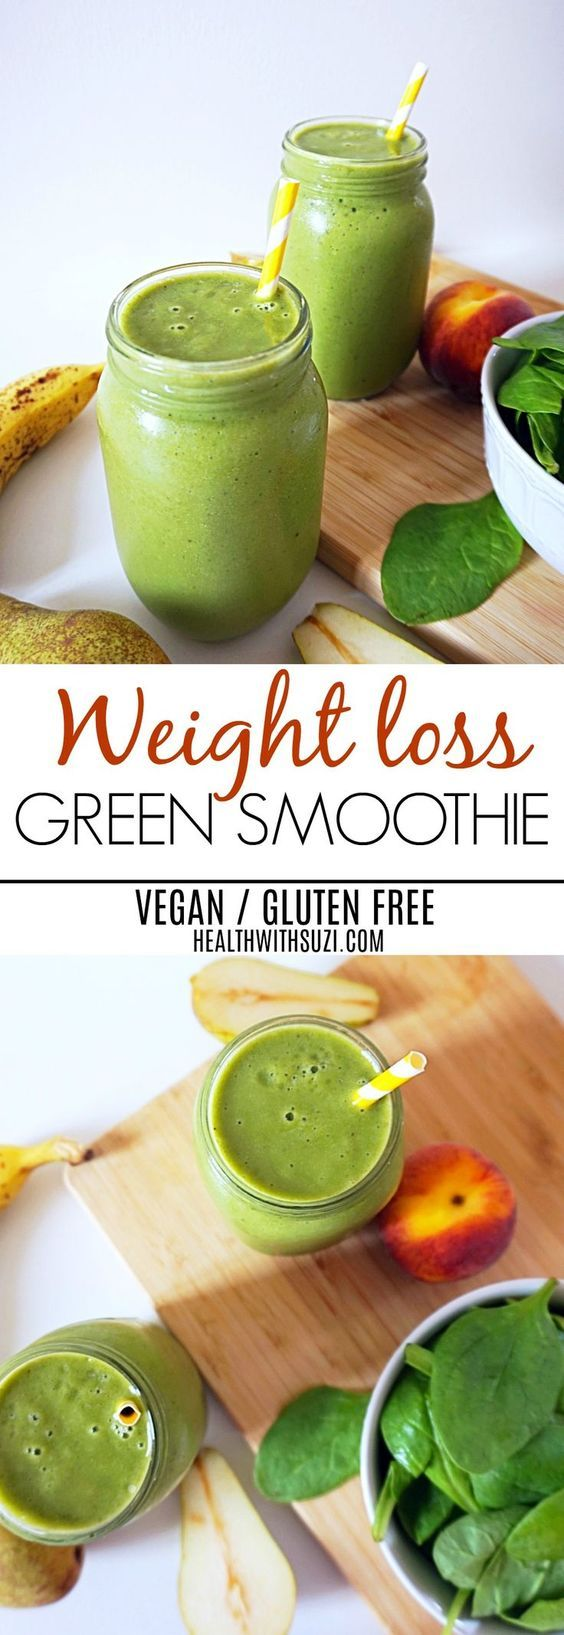 I Love This Green Smoothie!! It's sweet, creamy, filling and loaded with vitamins and minerals! I'm pinning this photo so I can always refer to this recipe anytime! #smoothies #GF #vegan #recipe #clairekcreations